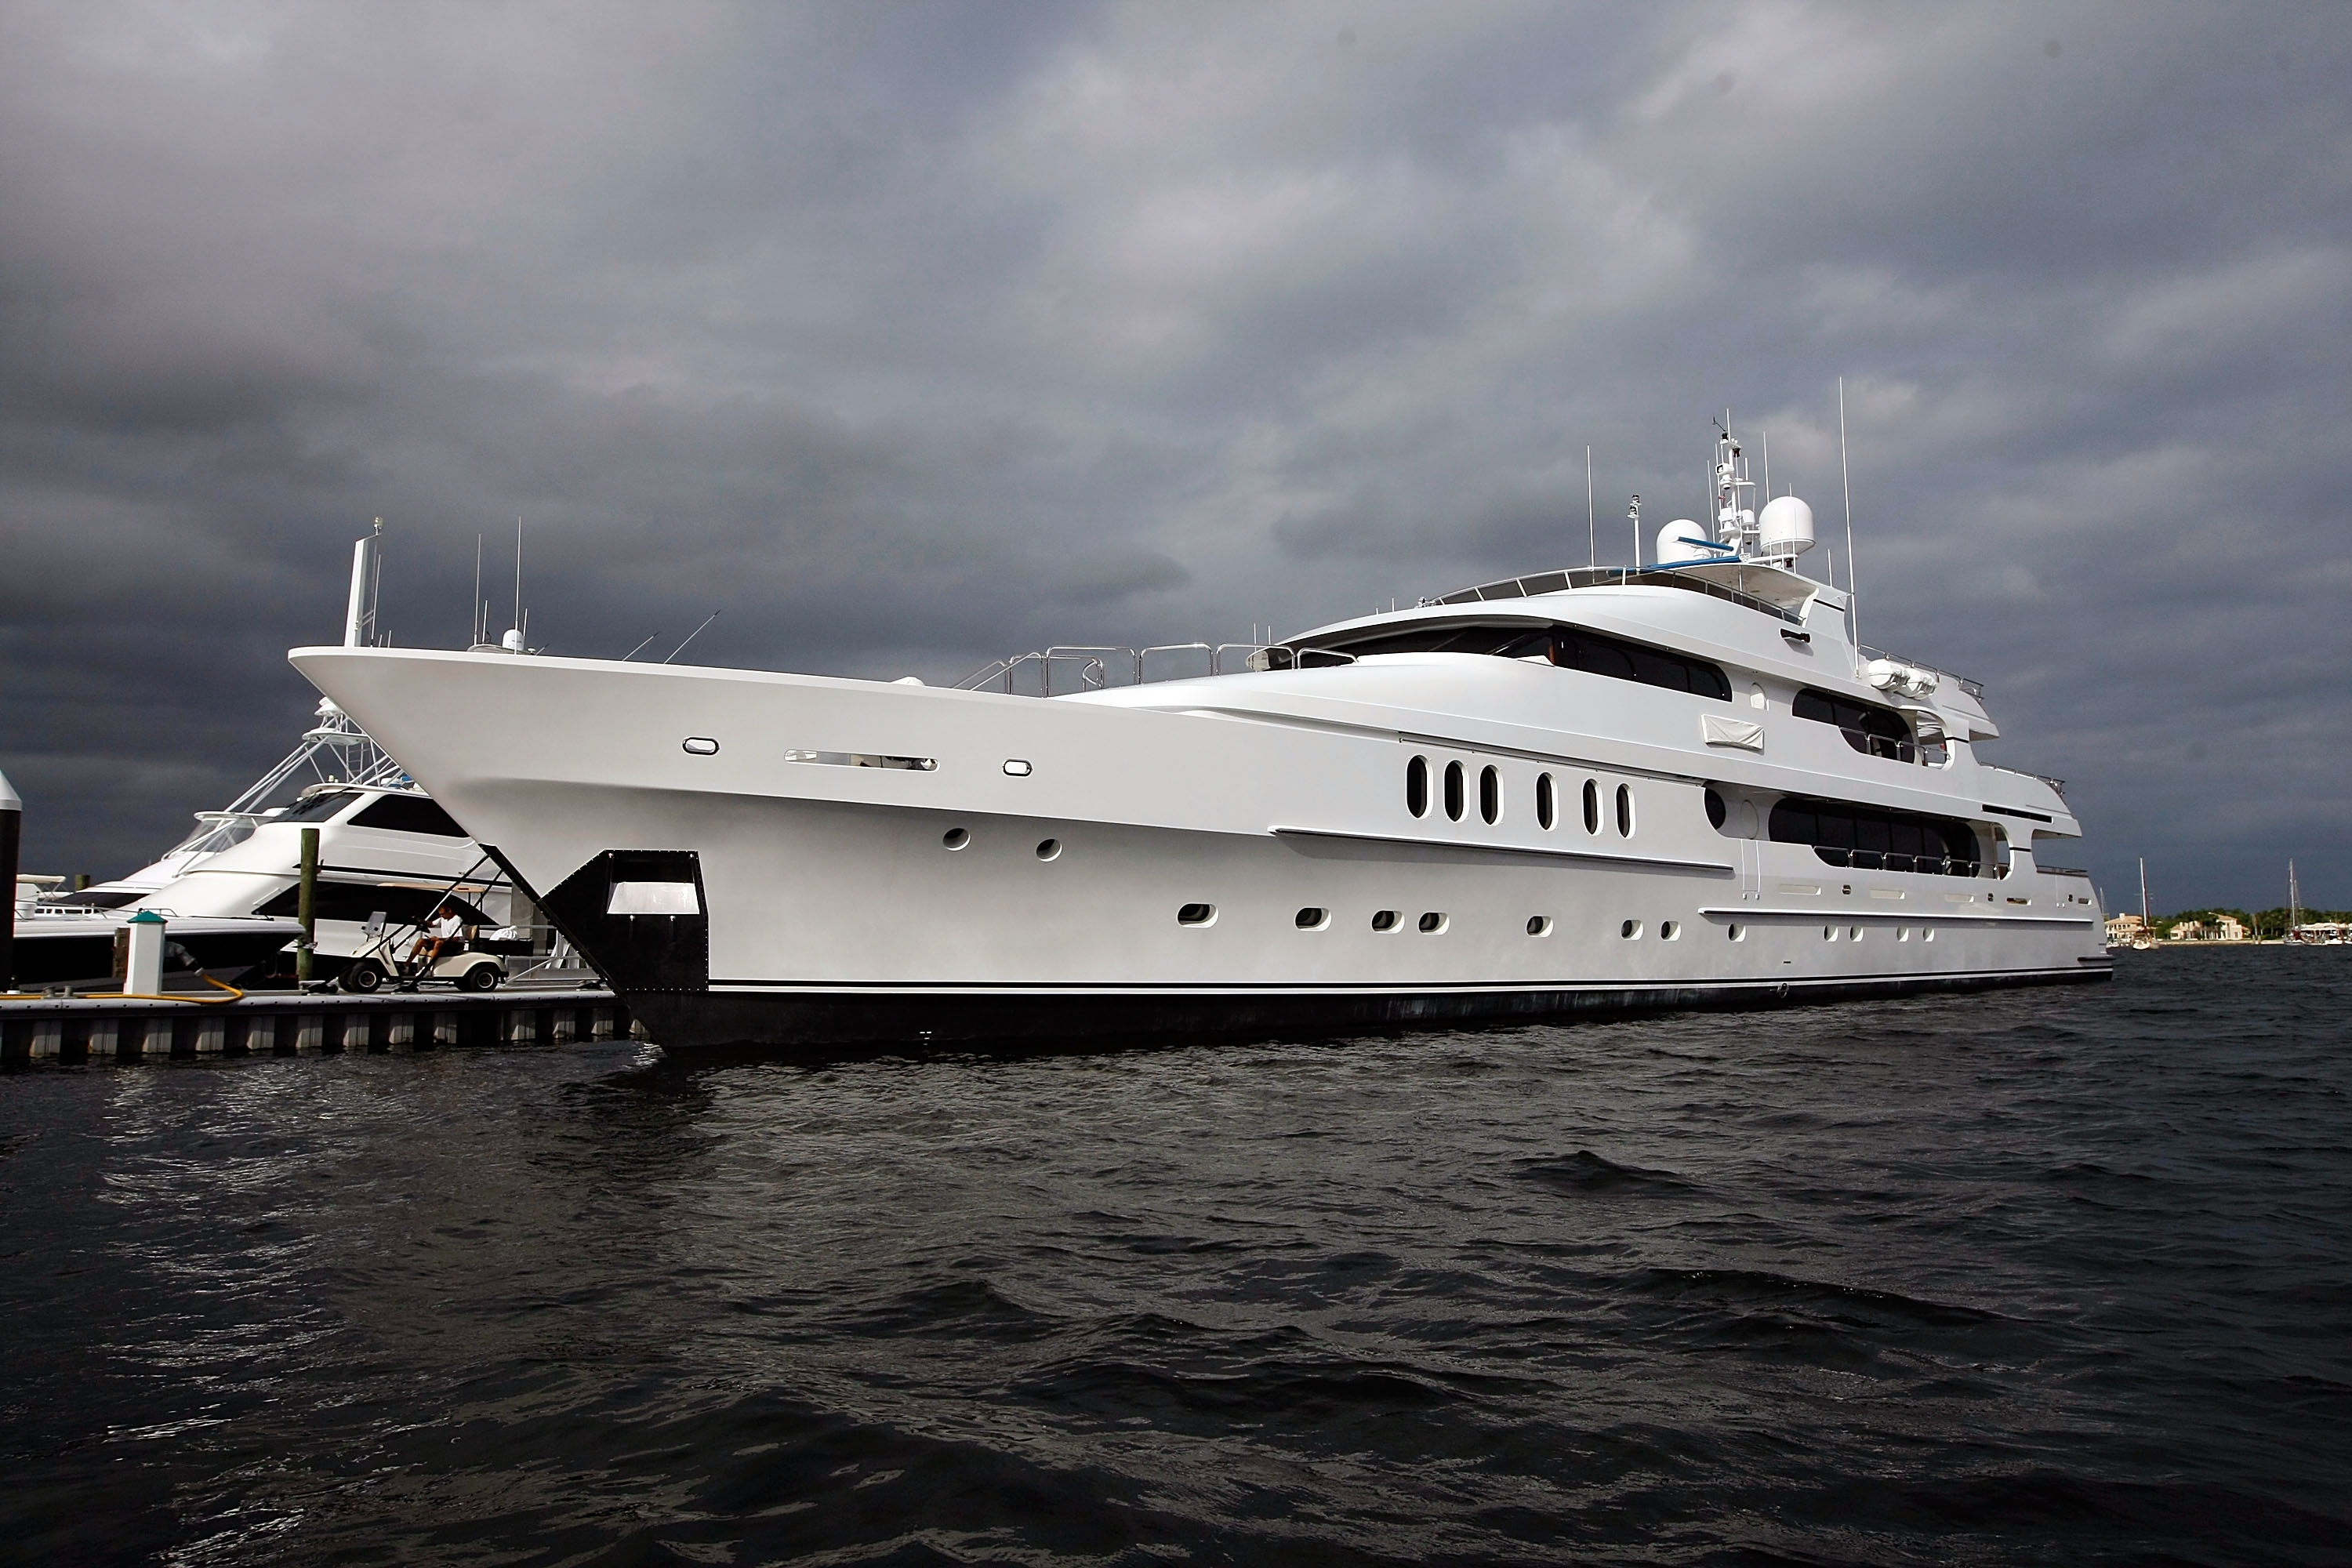 Tiger Woods Will Live Aboard His $20 Million Yacht During US Open